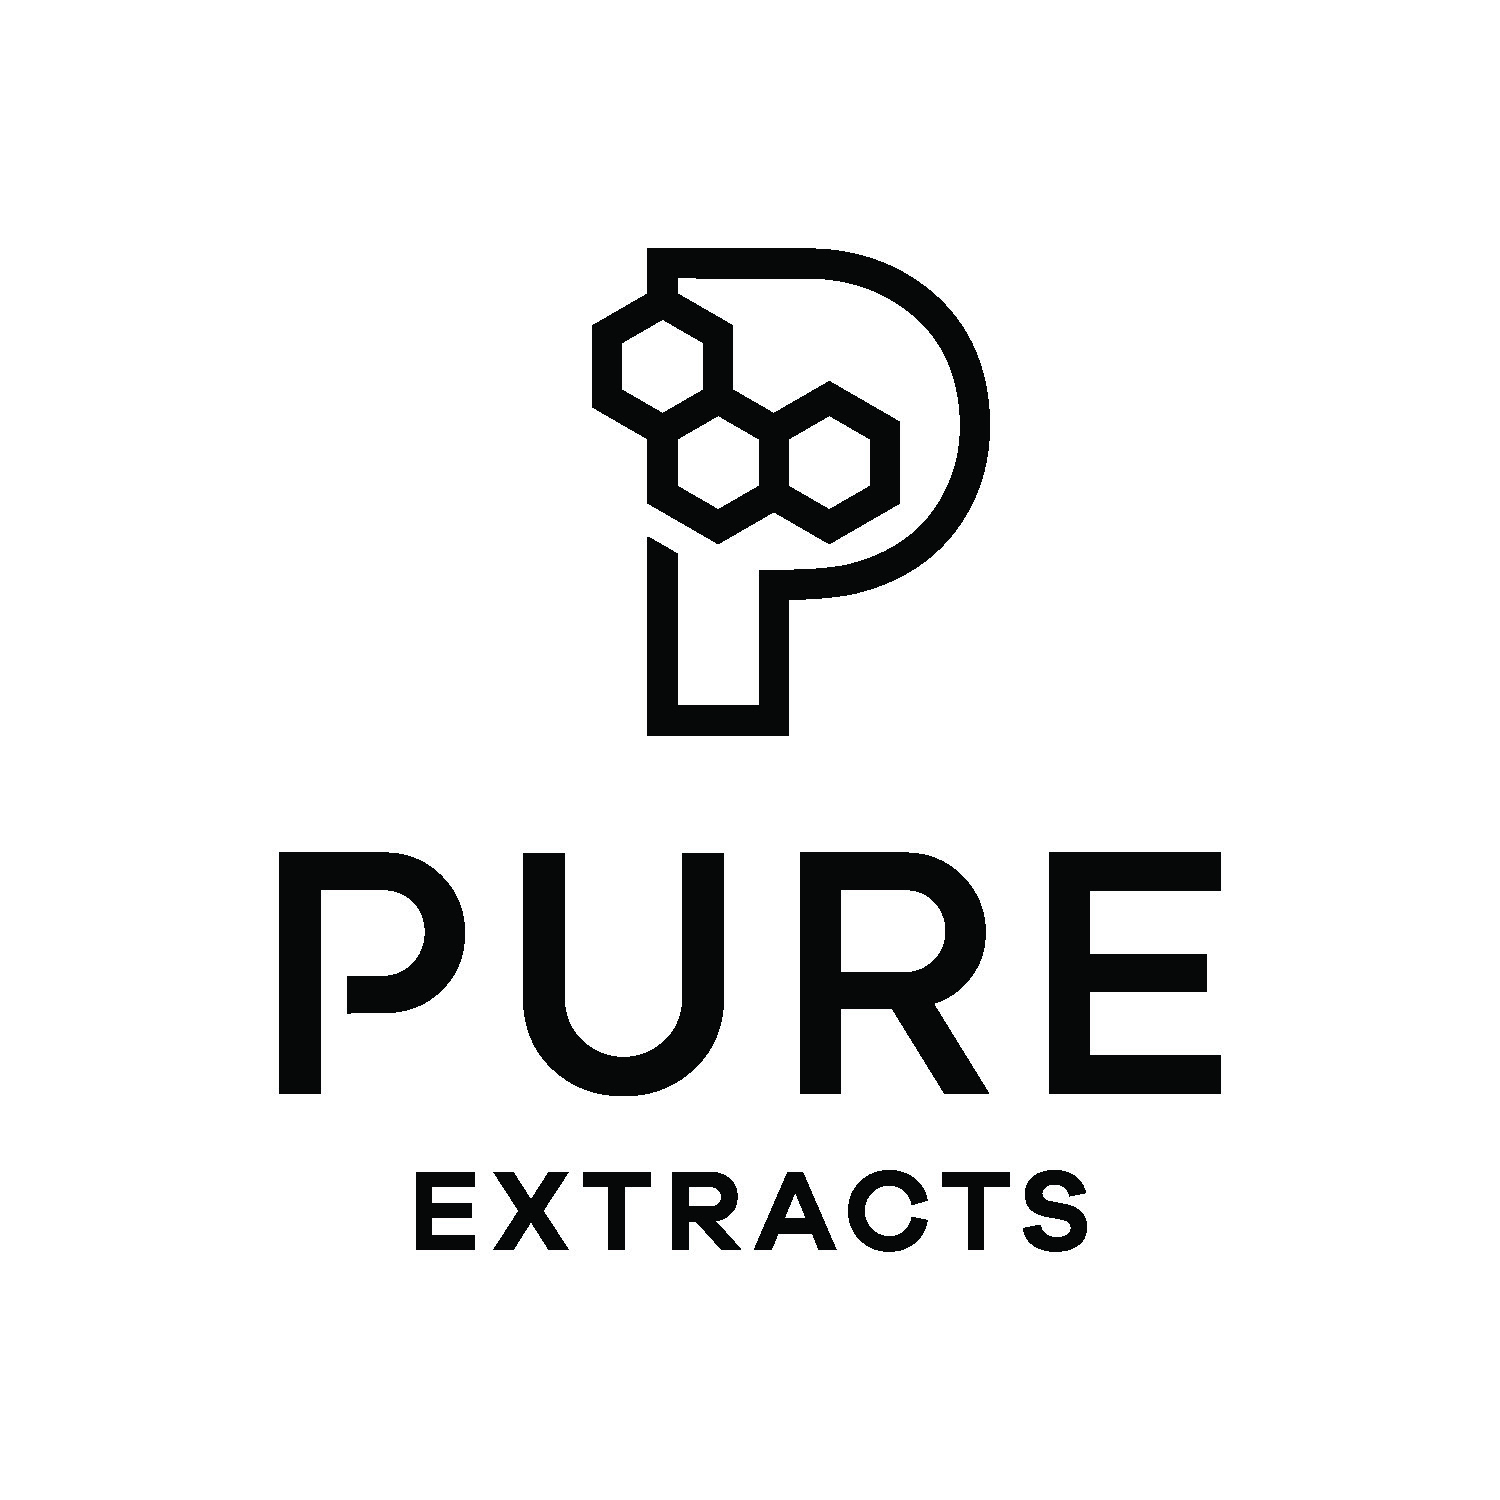 Pure Extracts Announces Its First Commercial Sale of CBD Oil on the Wholesale Market